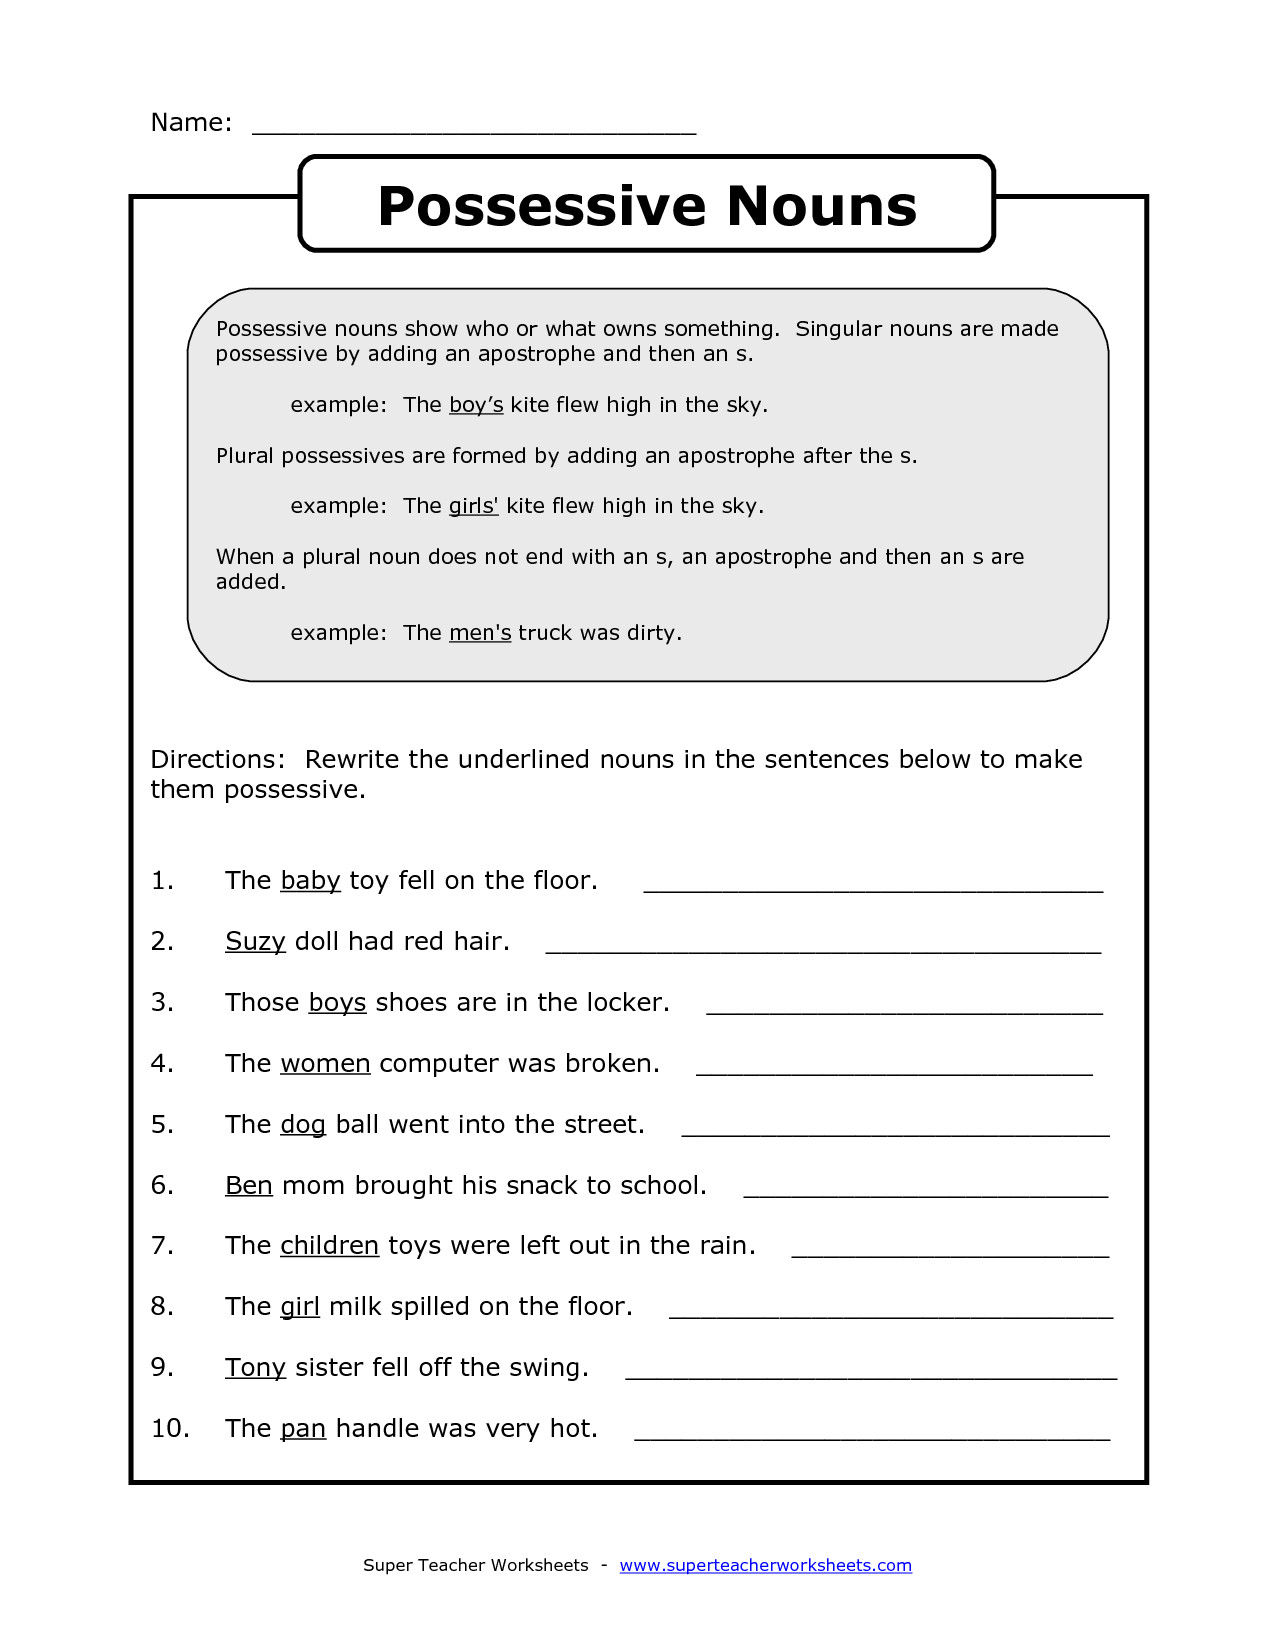 Possessive Pronouns Worksheet 5th Grade Possessive Nouns Worksheets Elementary